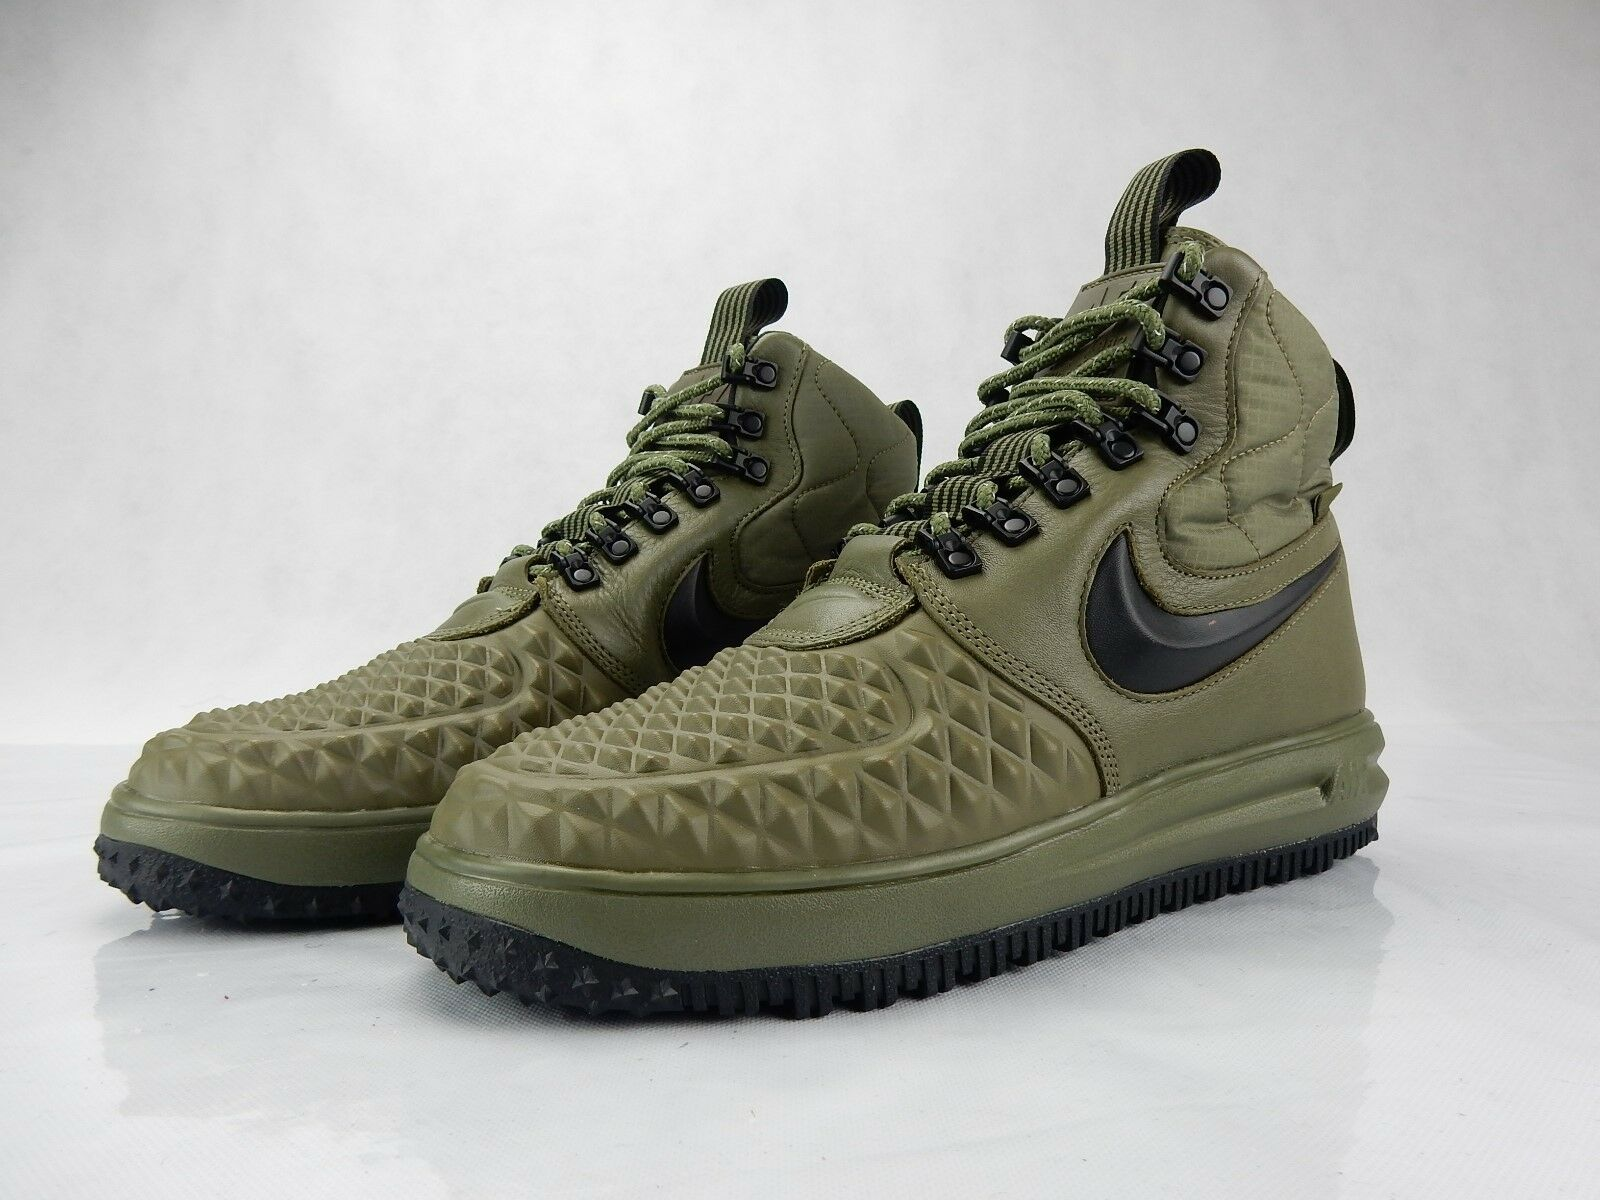 Nike Air Lunar Force 1 Duckboots 916682 202 S shoes Olive Black Mens Size 10